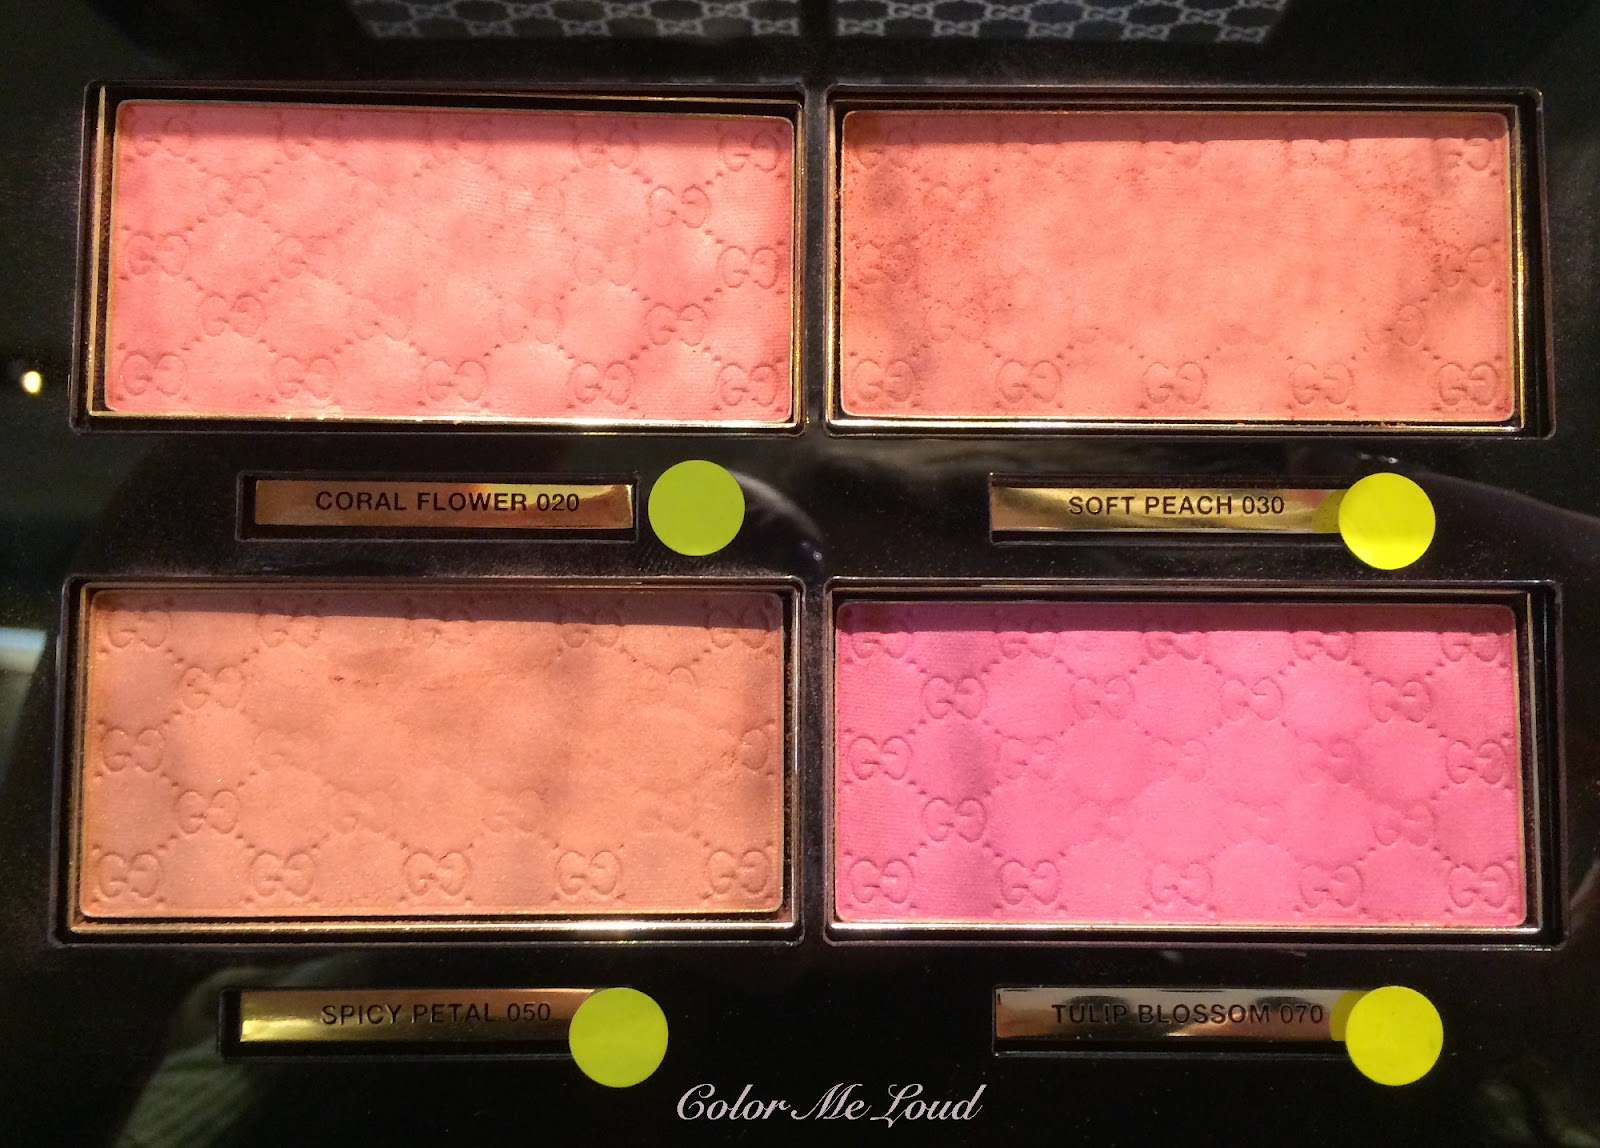 Gucci Sheer Blushing Powder Coral Flower, Soft Peach, Spicy Petal and Tulip Blossom